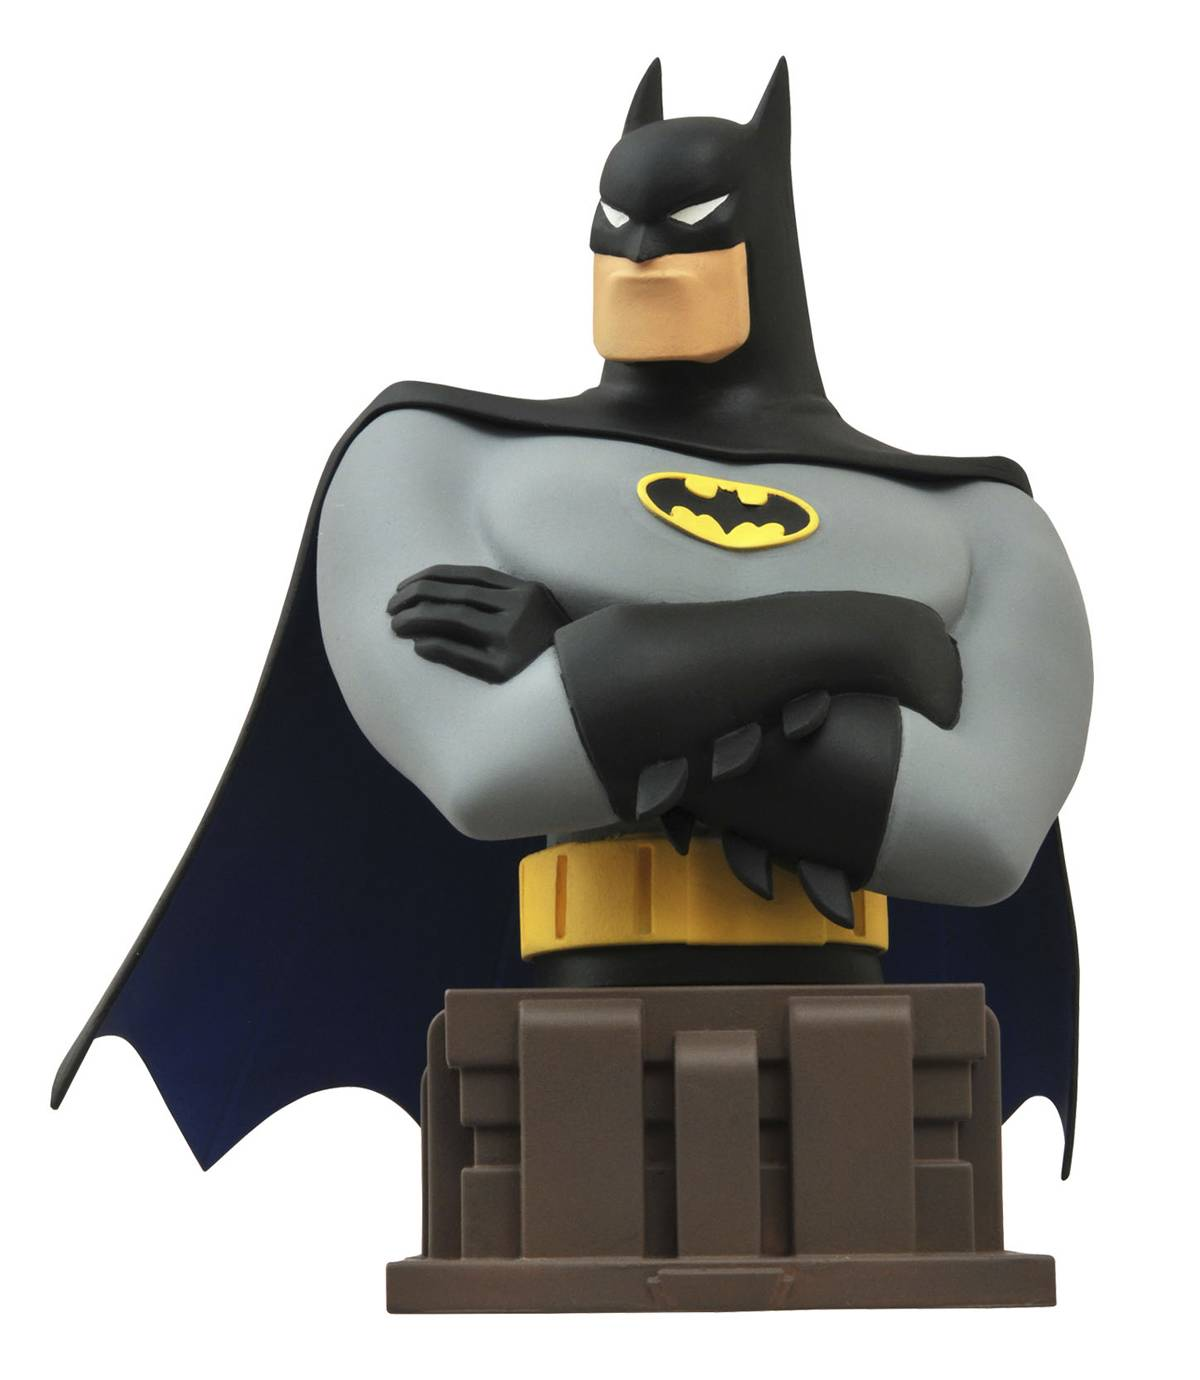 Diamond DC Comics Batman Animated Series Batman Bust